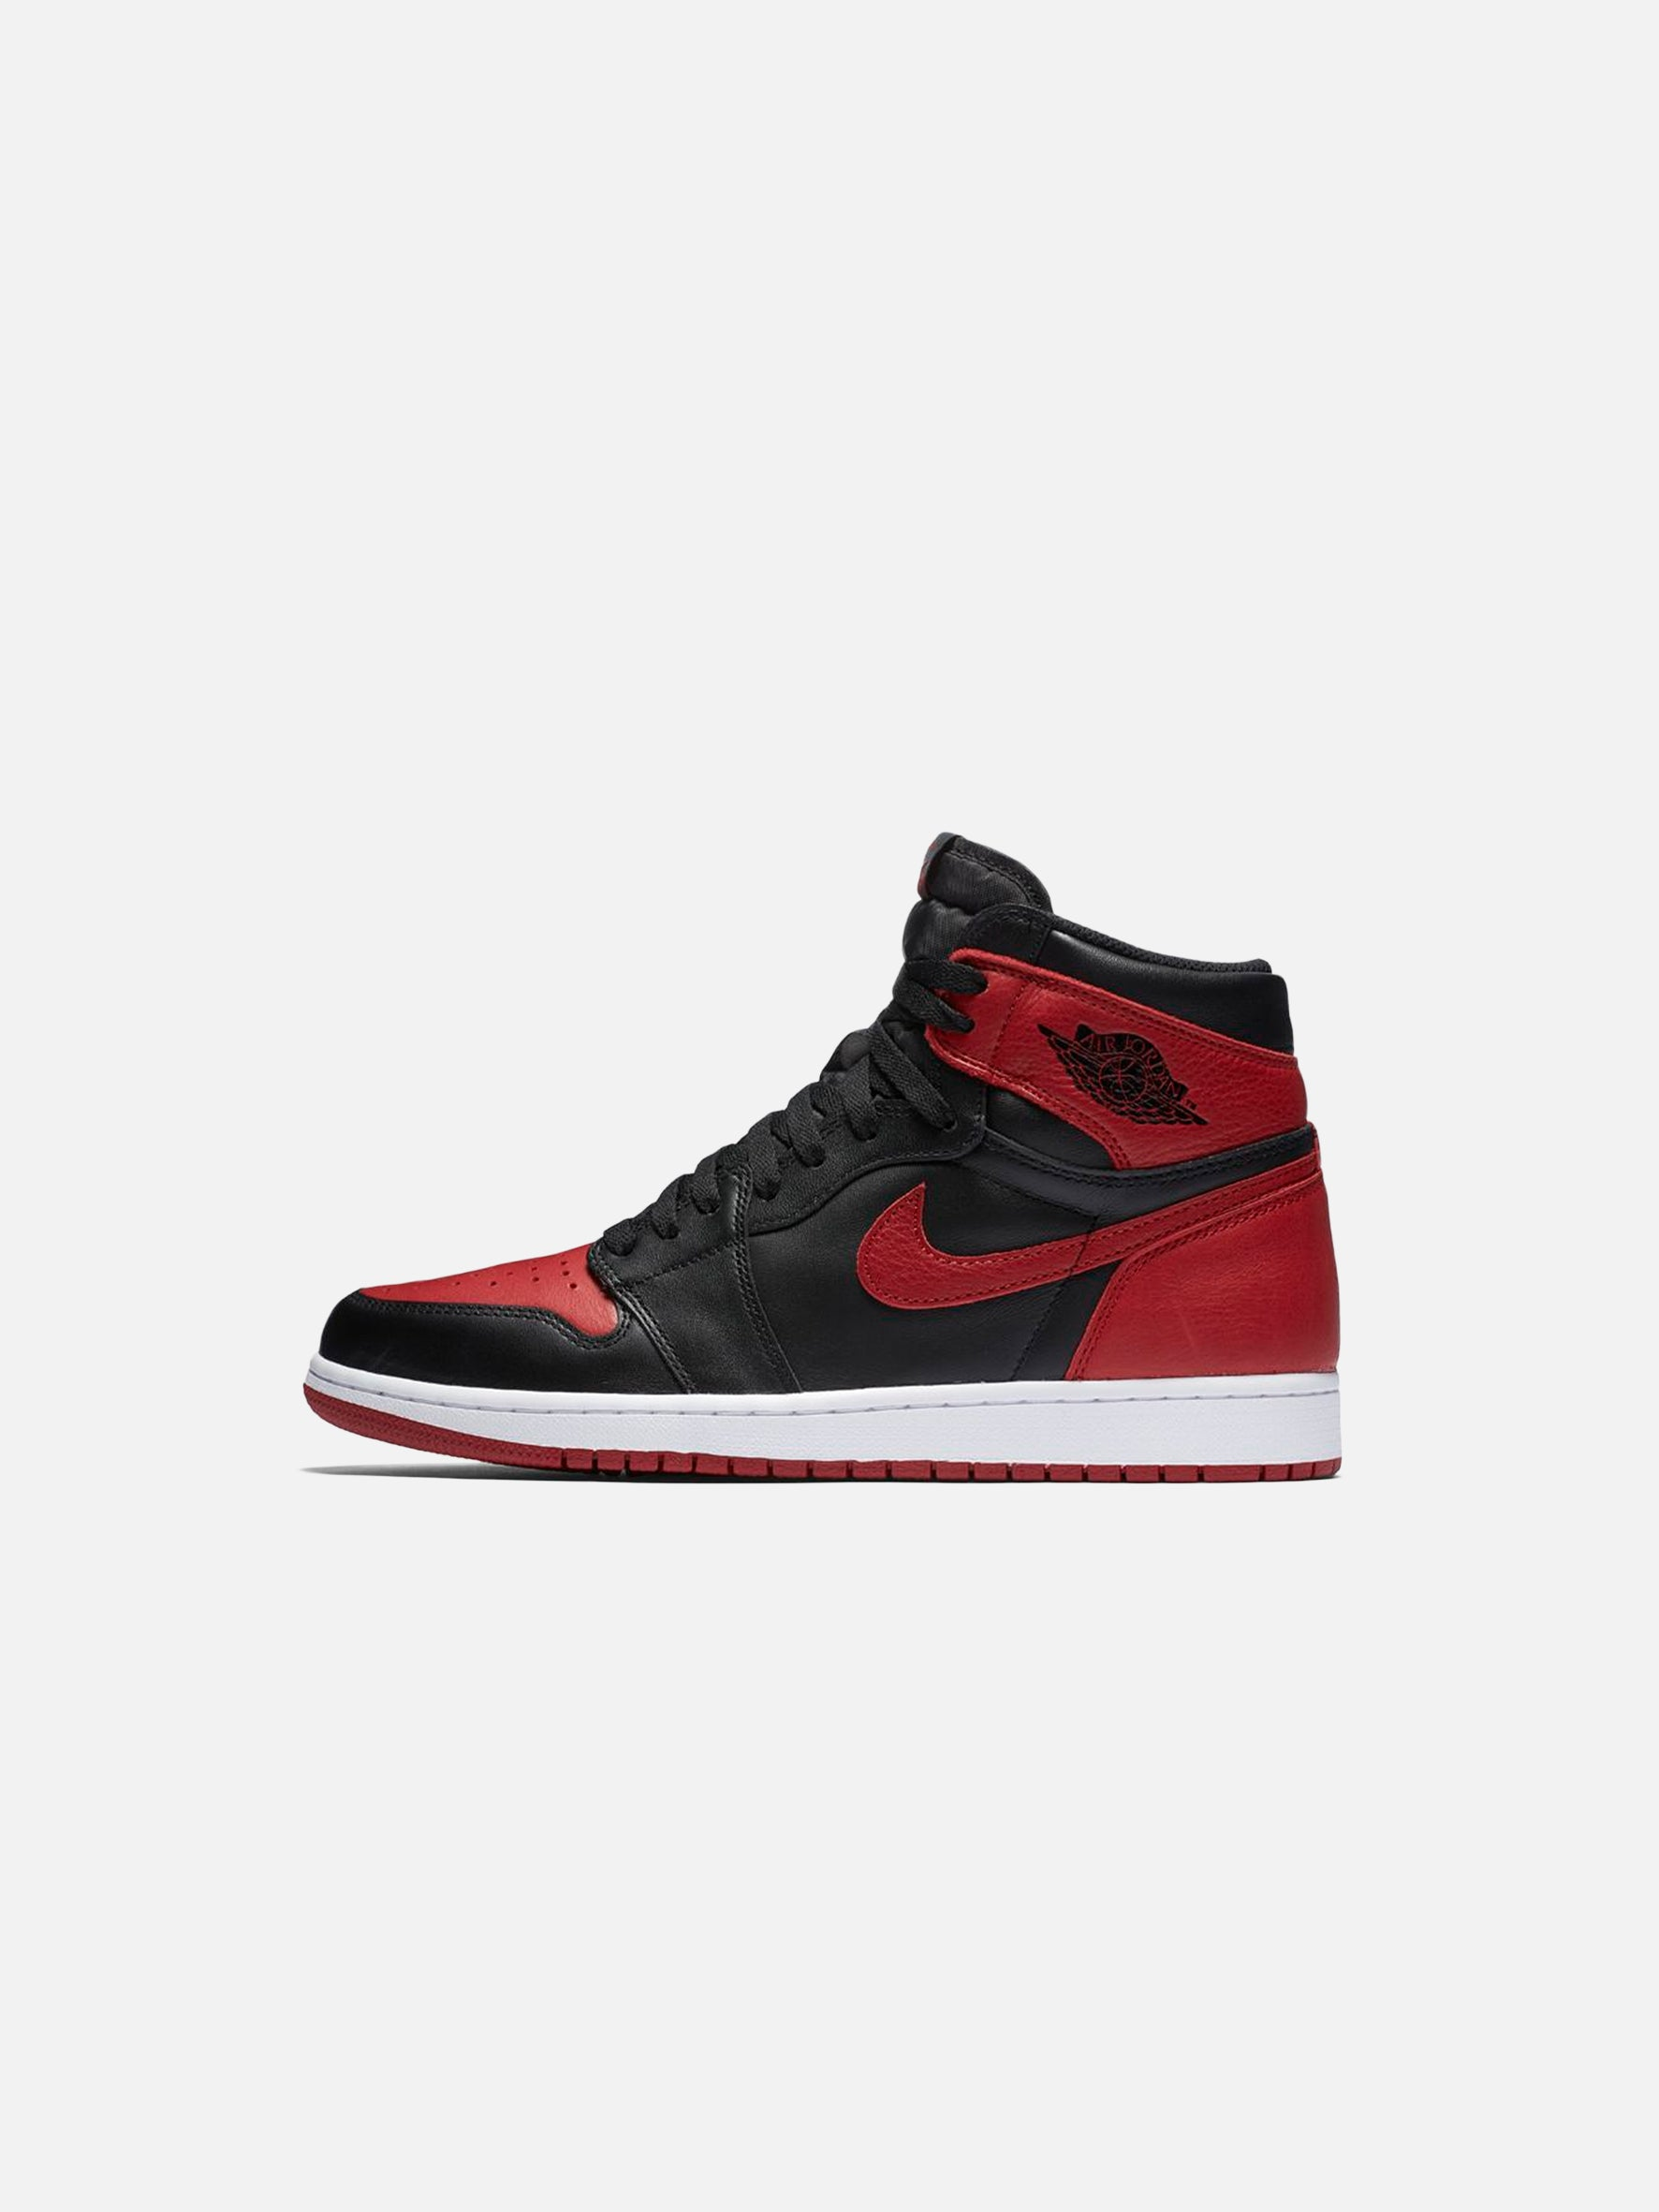 Nike Air Jordan 1 Retro Bred/Banned